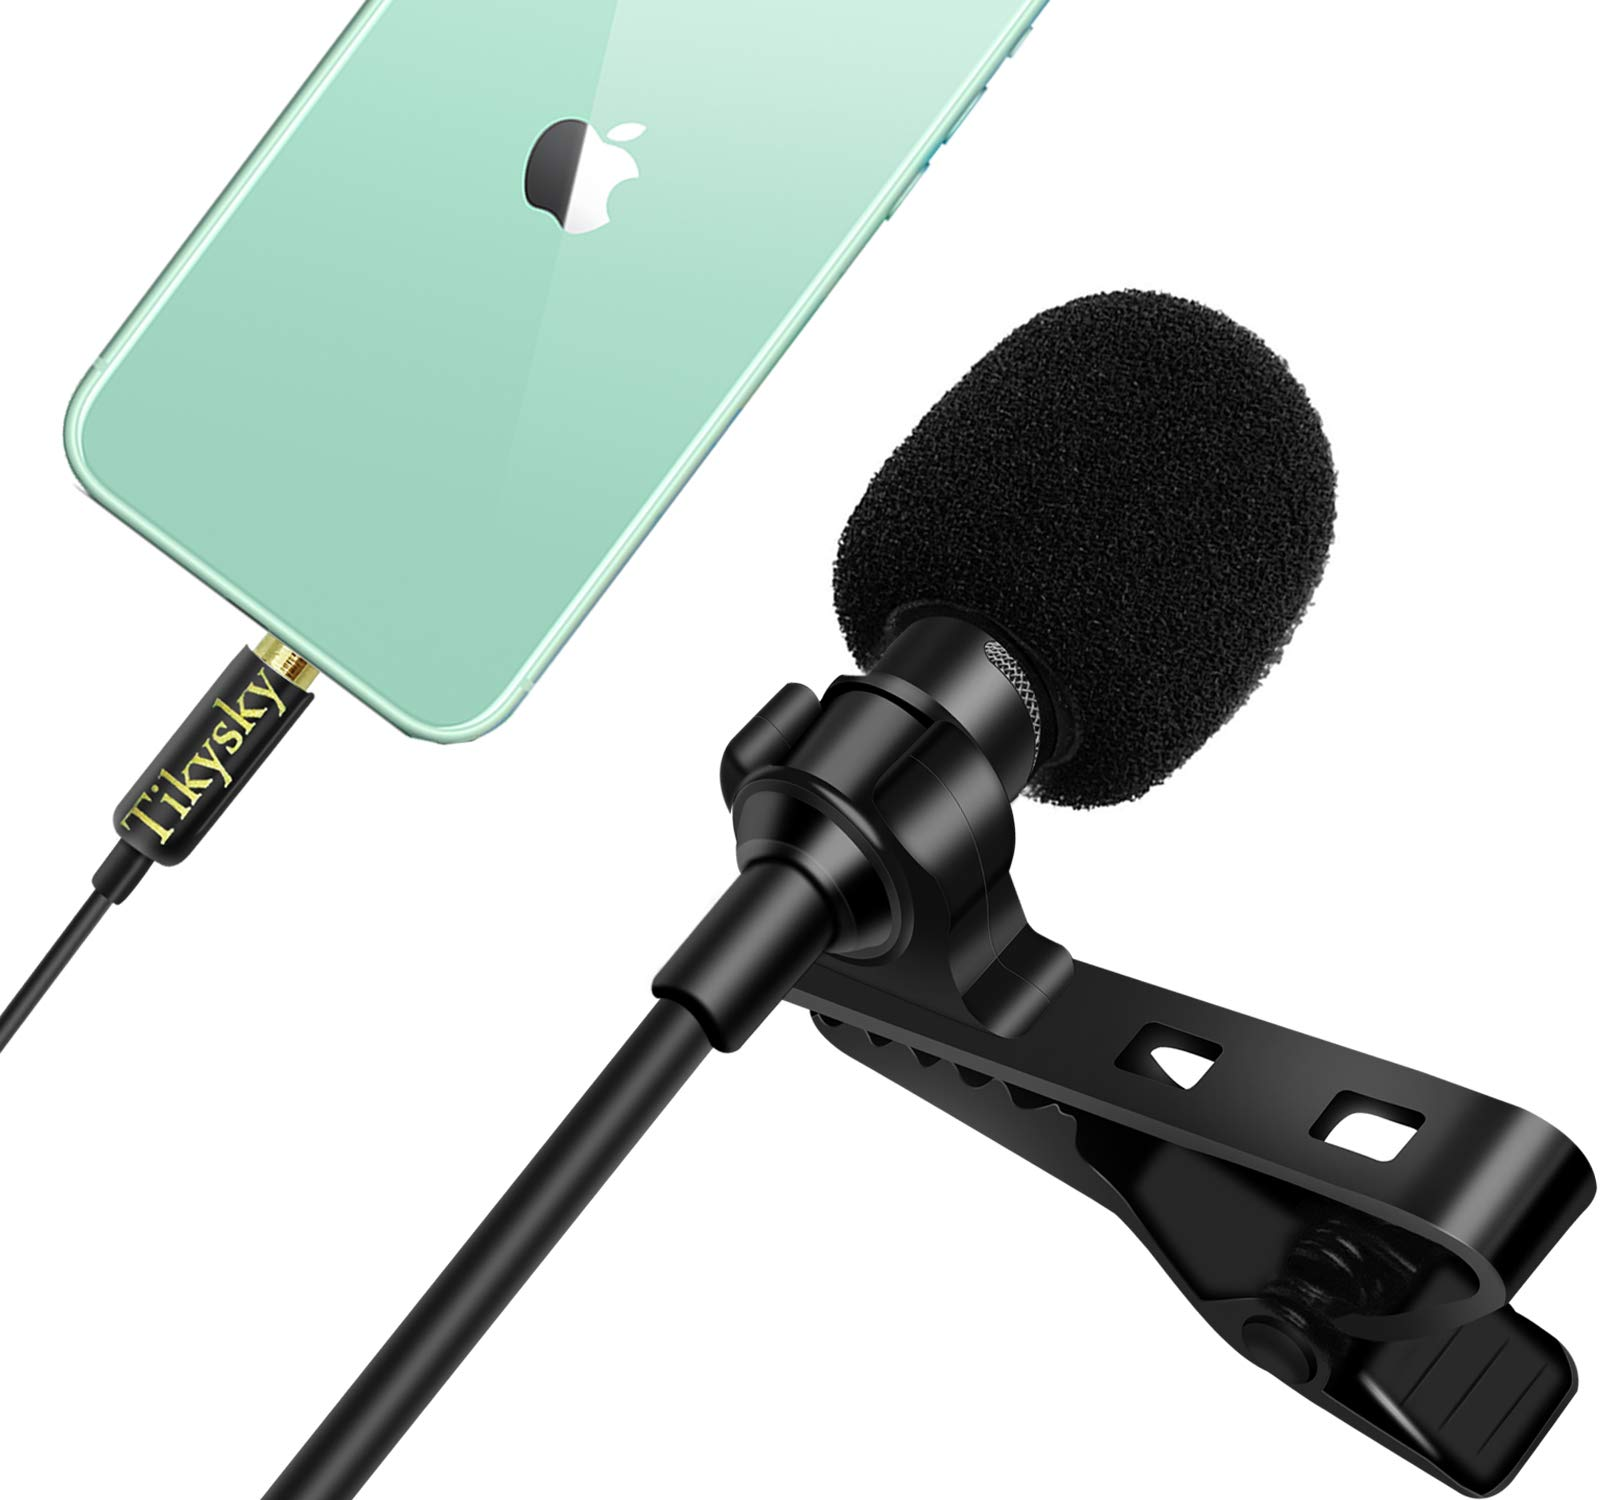 Tikysky Lavalier Microphone for iPhone Android Cell Phone Camera,Lapel Mic Noise Cancellation System Clip On for YouTube Video Podcast